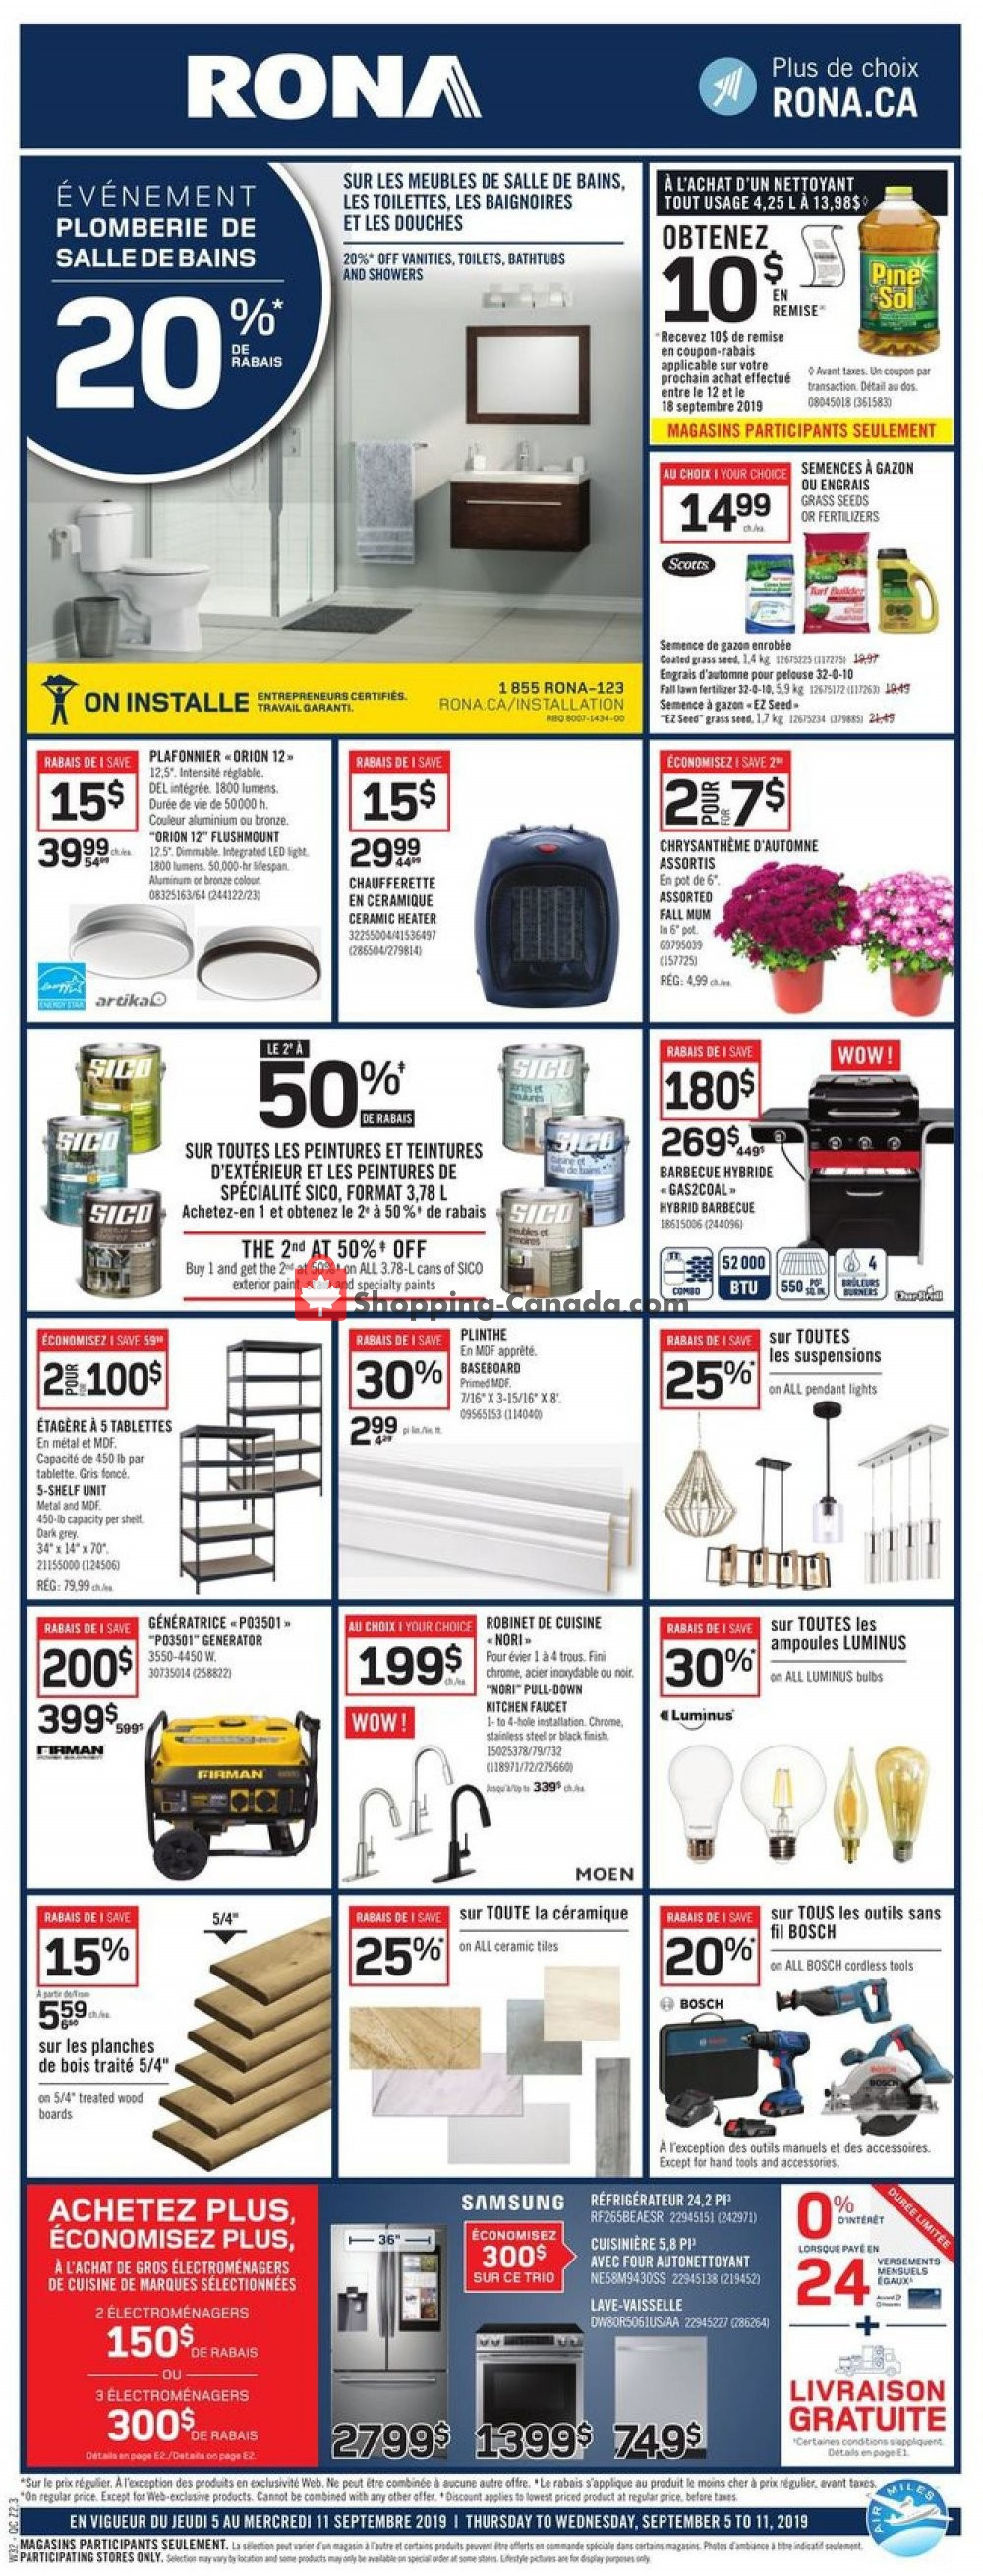 Flyer Rona Canada - from Thursday September 5, 2019 to Wednesday September 11, 2019